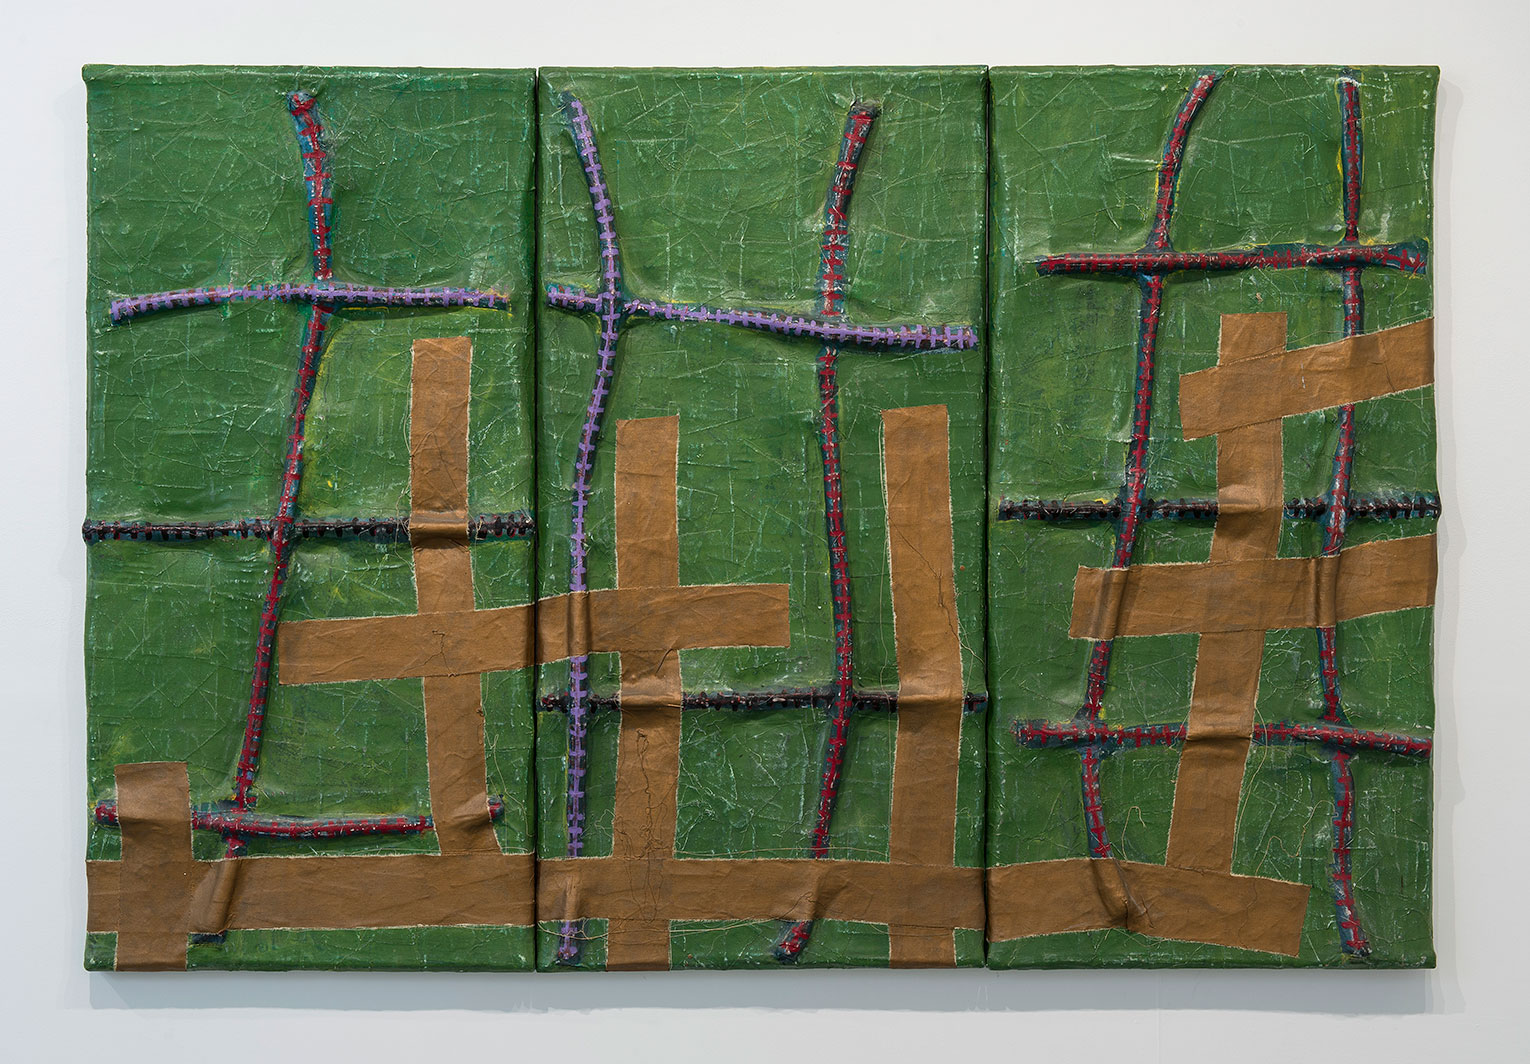 <b>Title:&nbsp;</b>Lacroix<br /><b>Year:&nbsp;</b>1992<br /><b>Medium:&nbsp;</b>Acrylic with cotton rope on stretched canvas<br /><b>Size:&nbsp;</b>152 x 230 x 9 cm